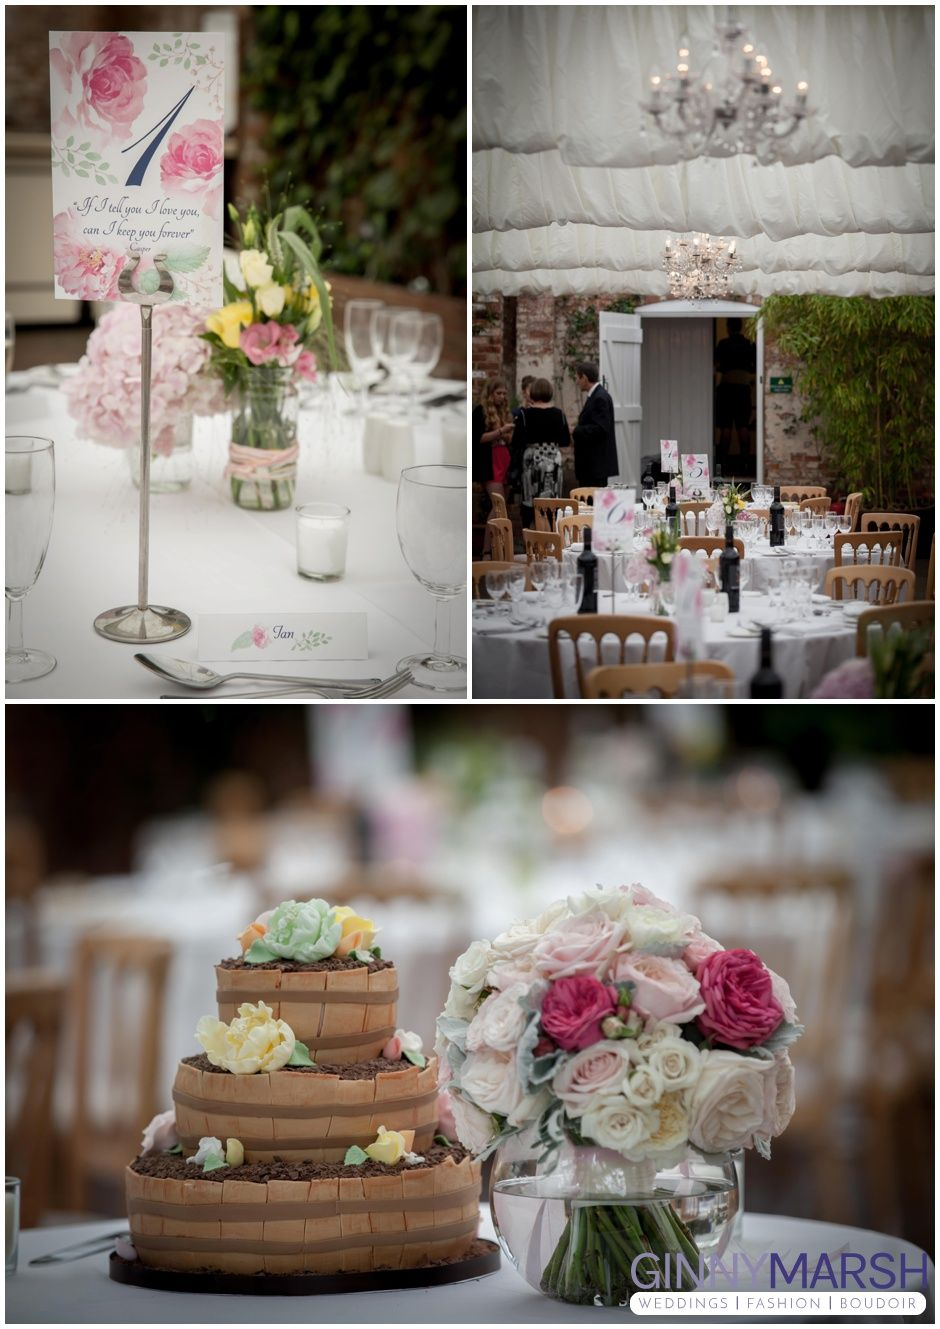 Chocolate Wedding Cake Spring Flowers Table Pieces Northbrook Park Venue